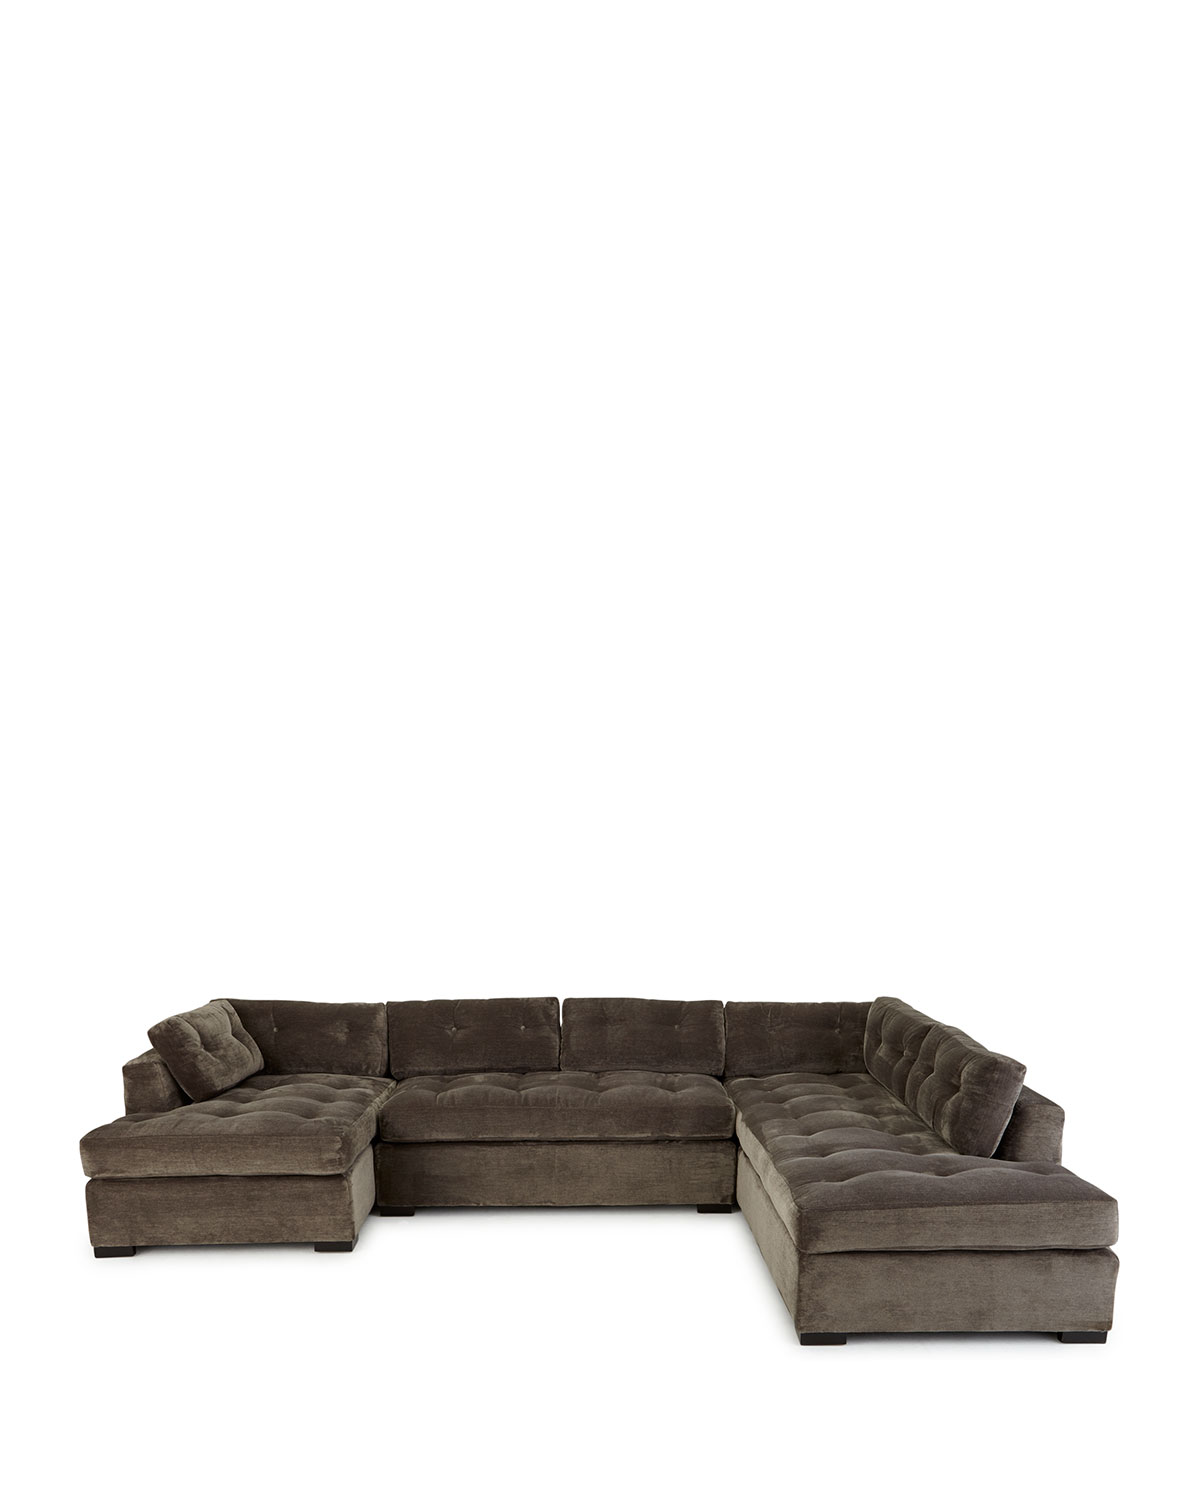 Old Hickory Tannerymclain Gray 3 Piece Right Side Chaise Sectional 136 5 Quot